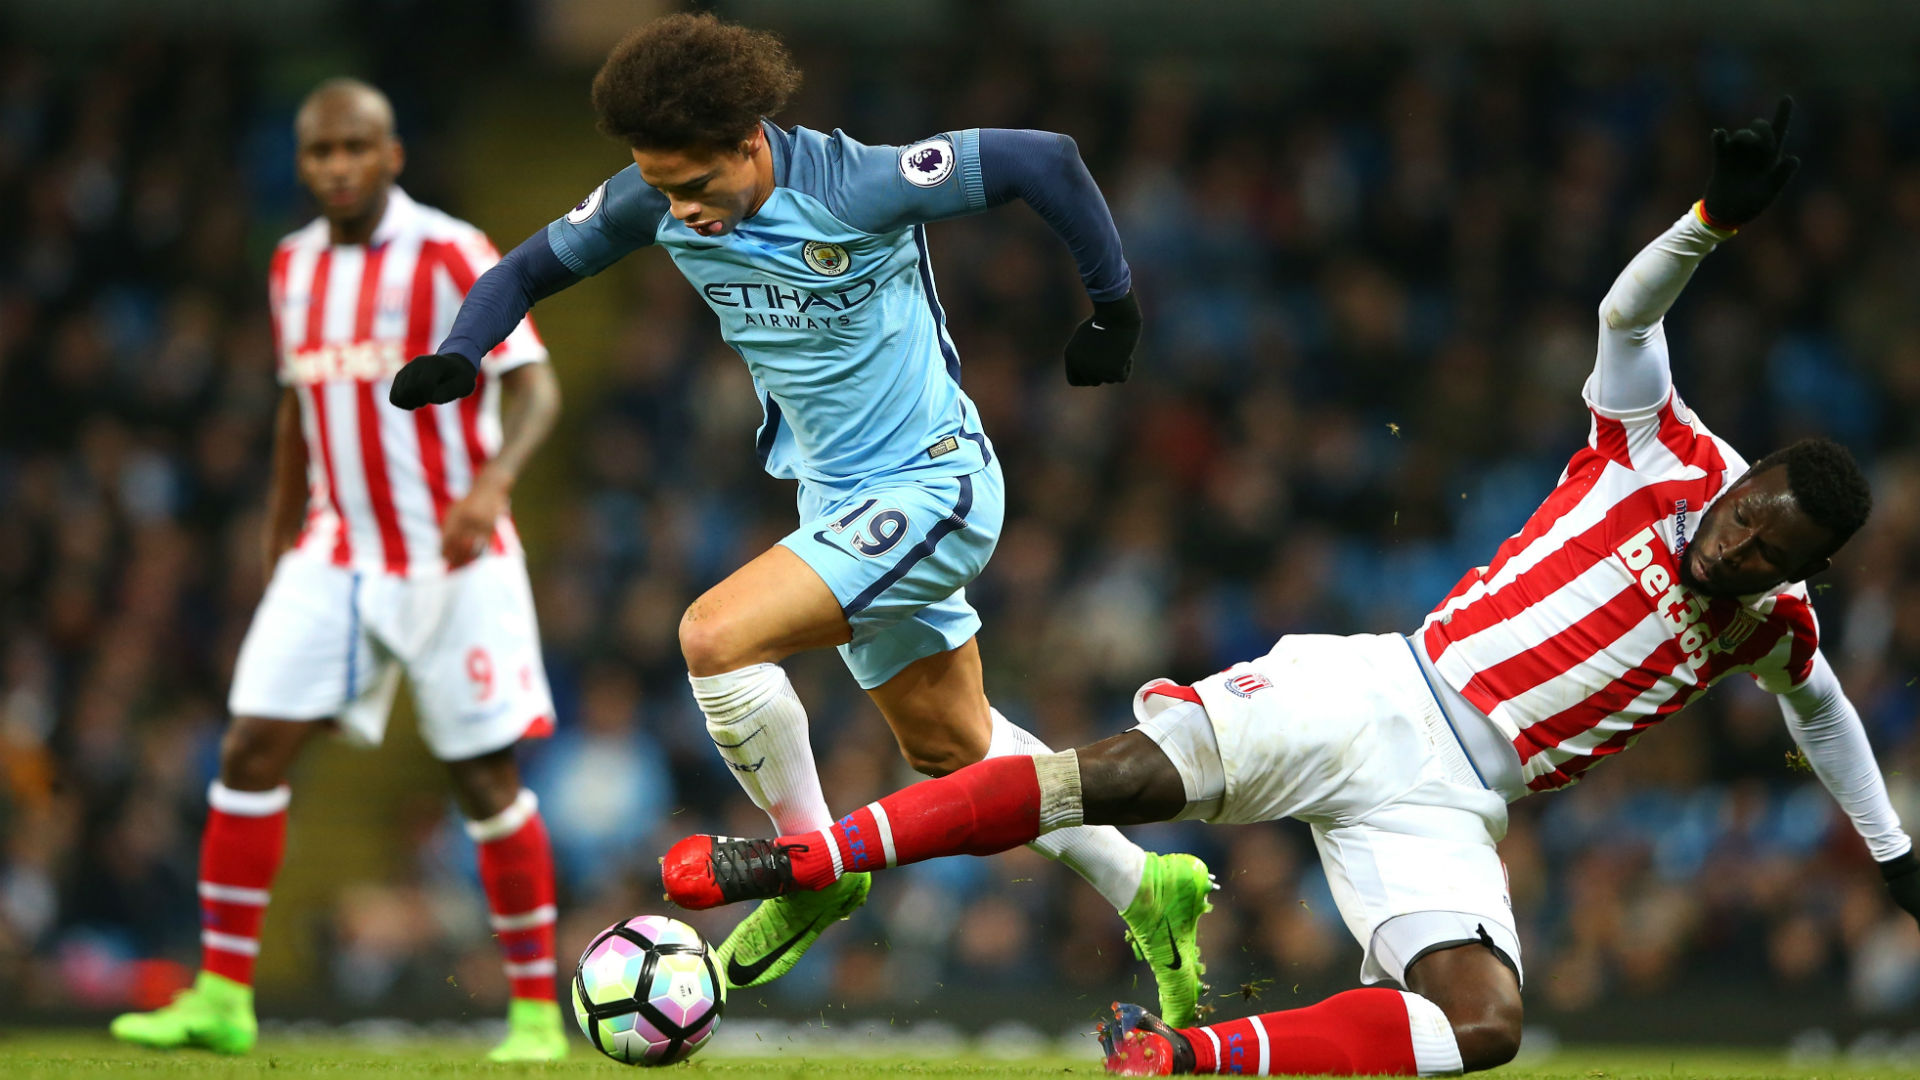 Sane Man City Stoke